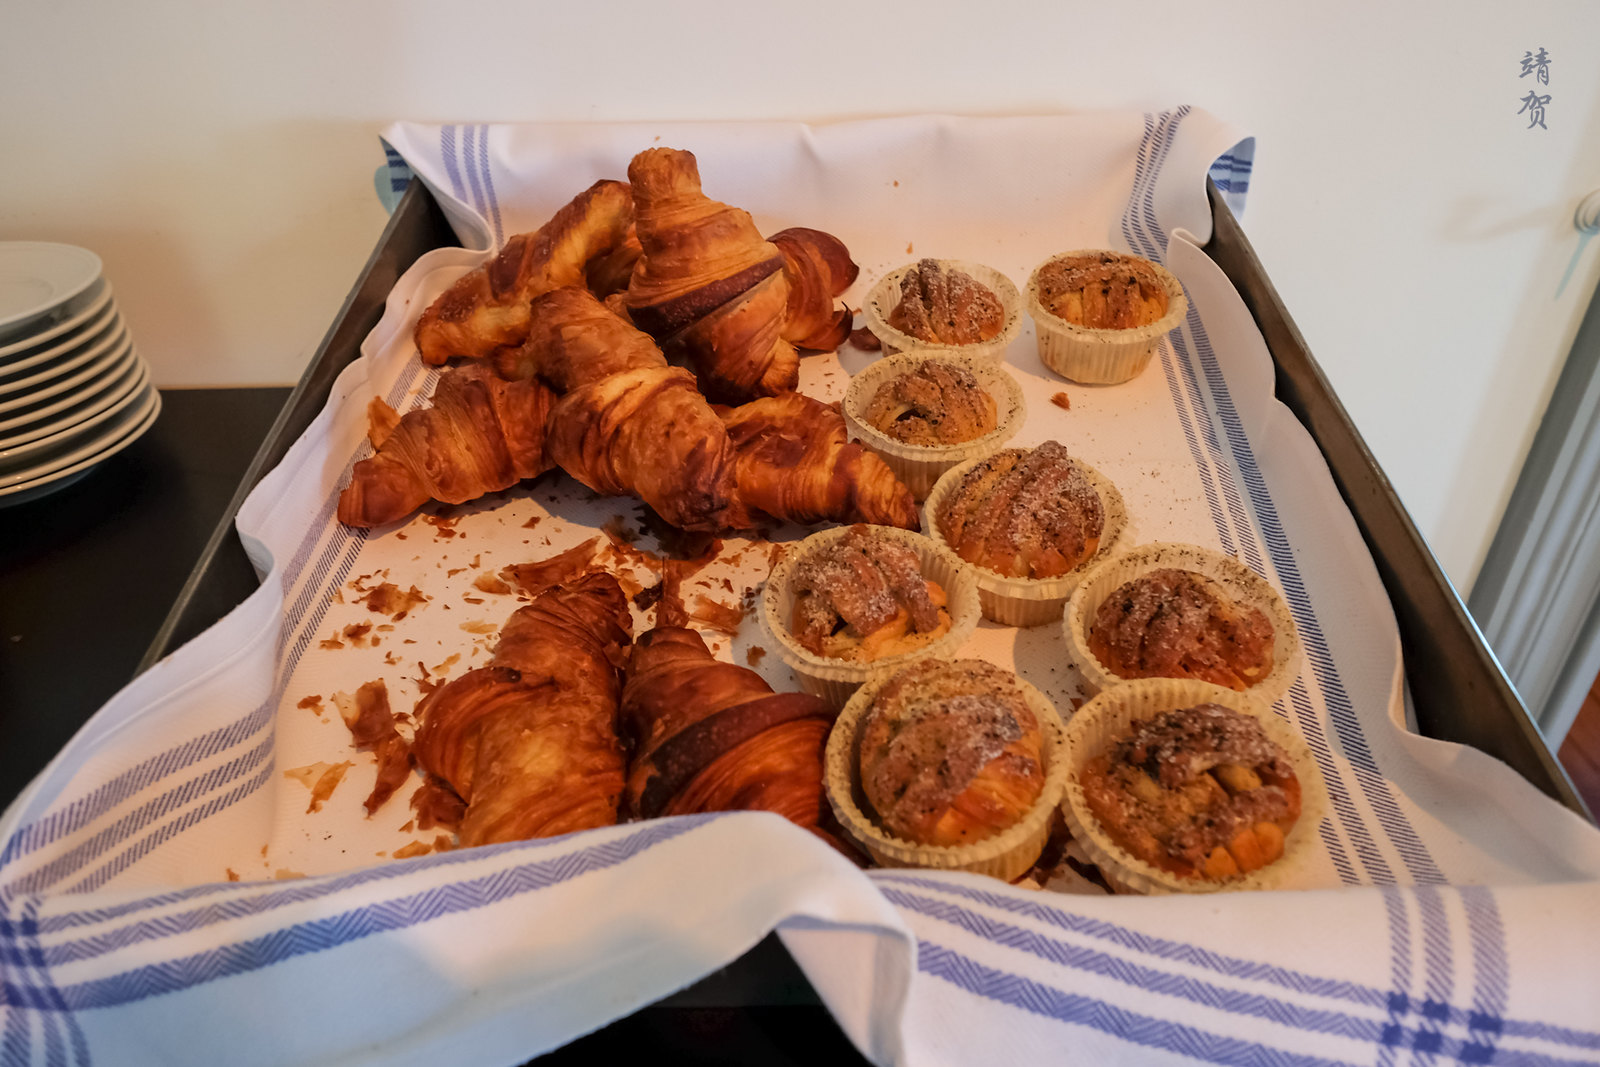 Croissants and muffins